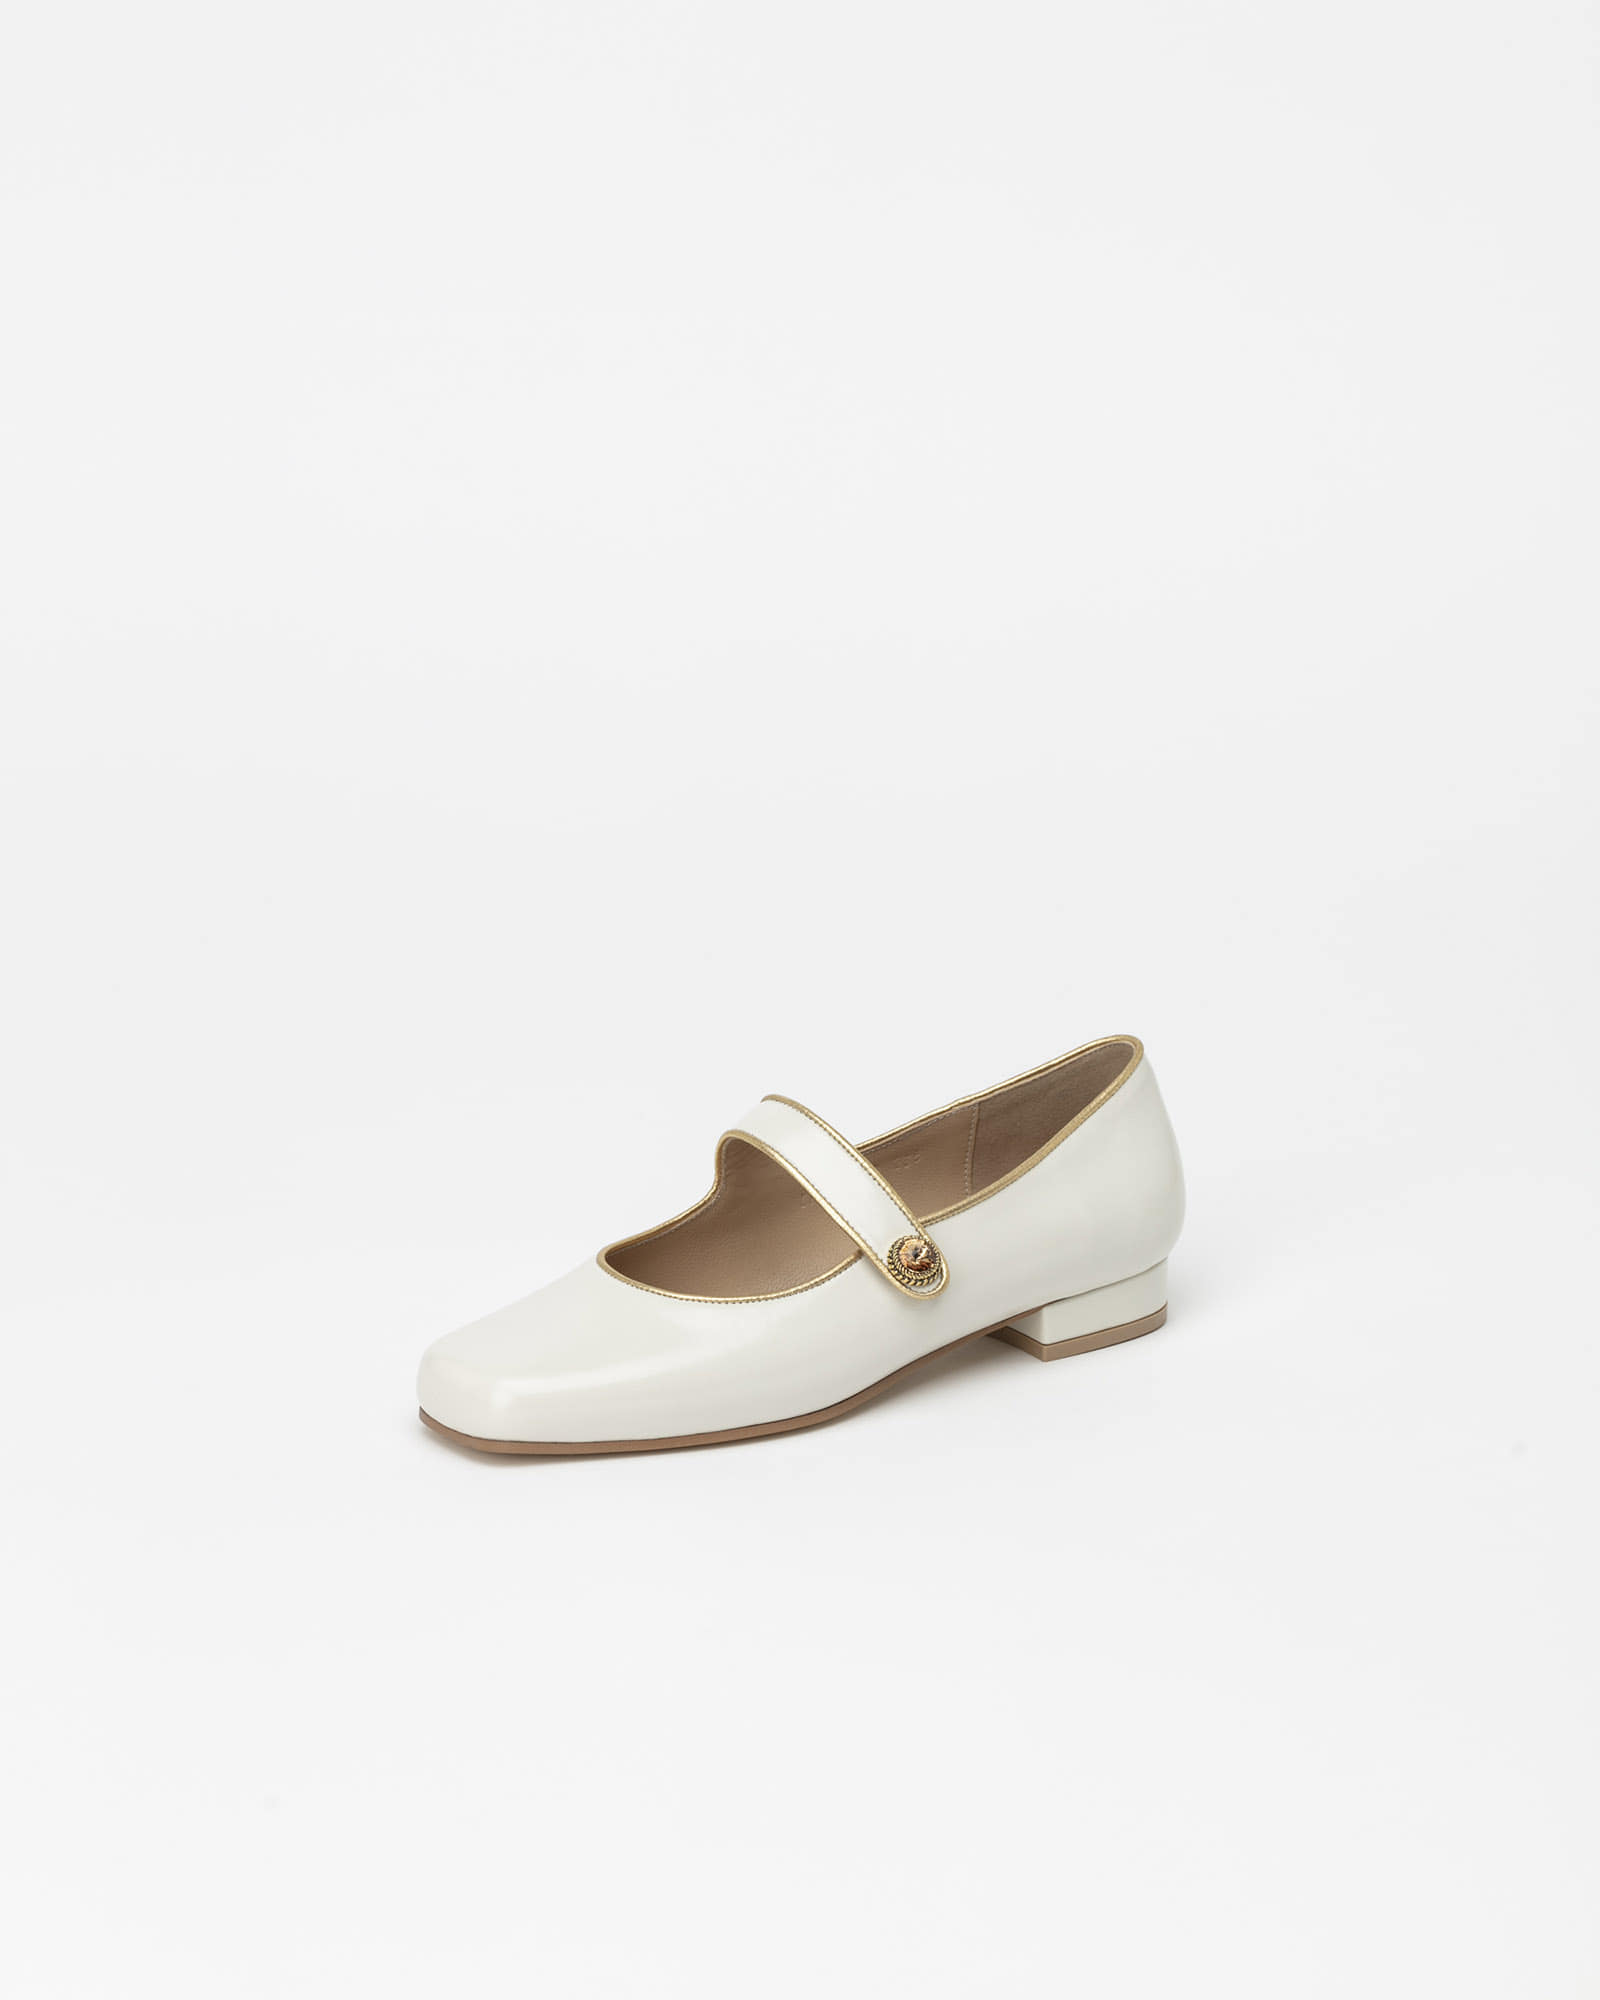 Saison Maryjane Flat Shoes in Ivory Textured Patent